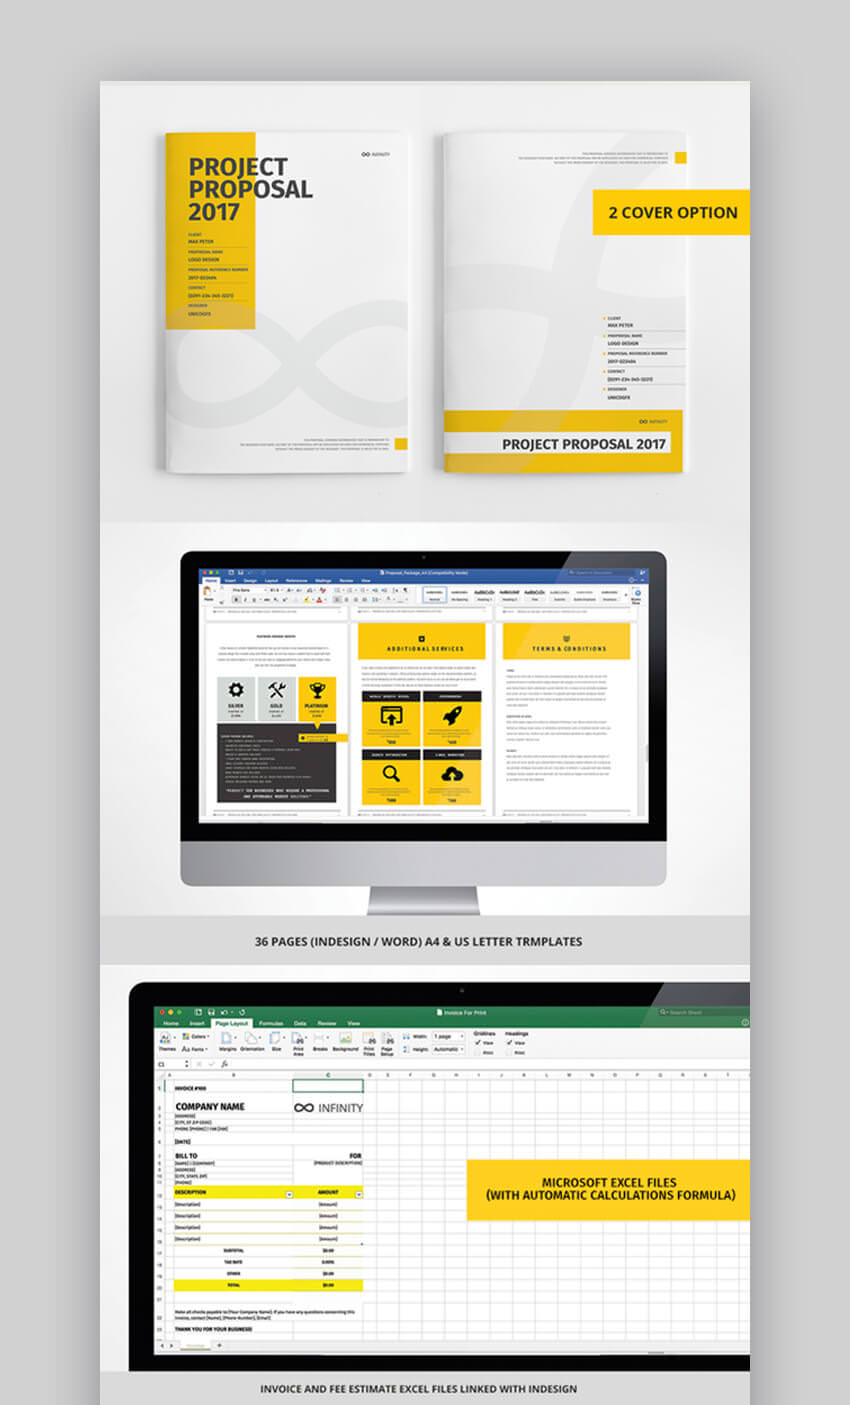 100 Pages Bundle Full Proposal Packages